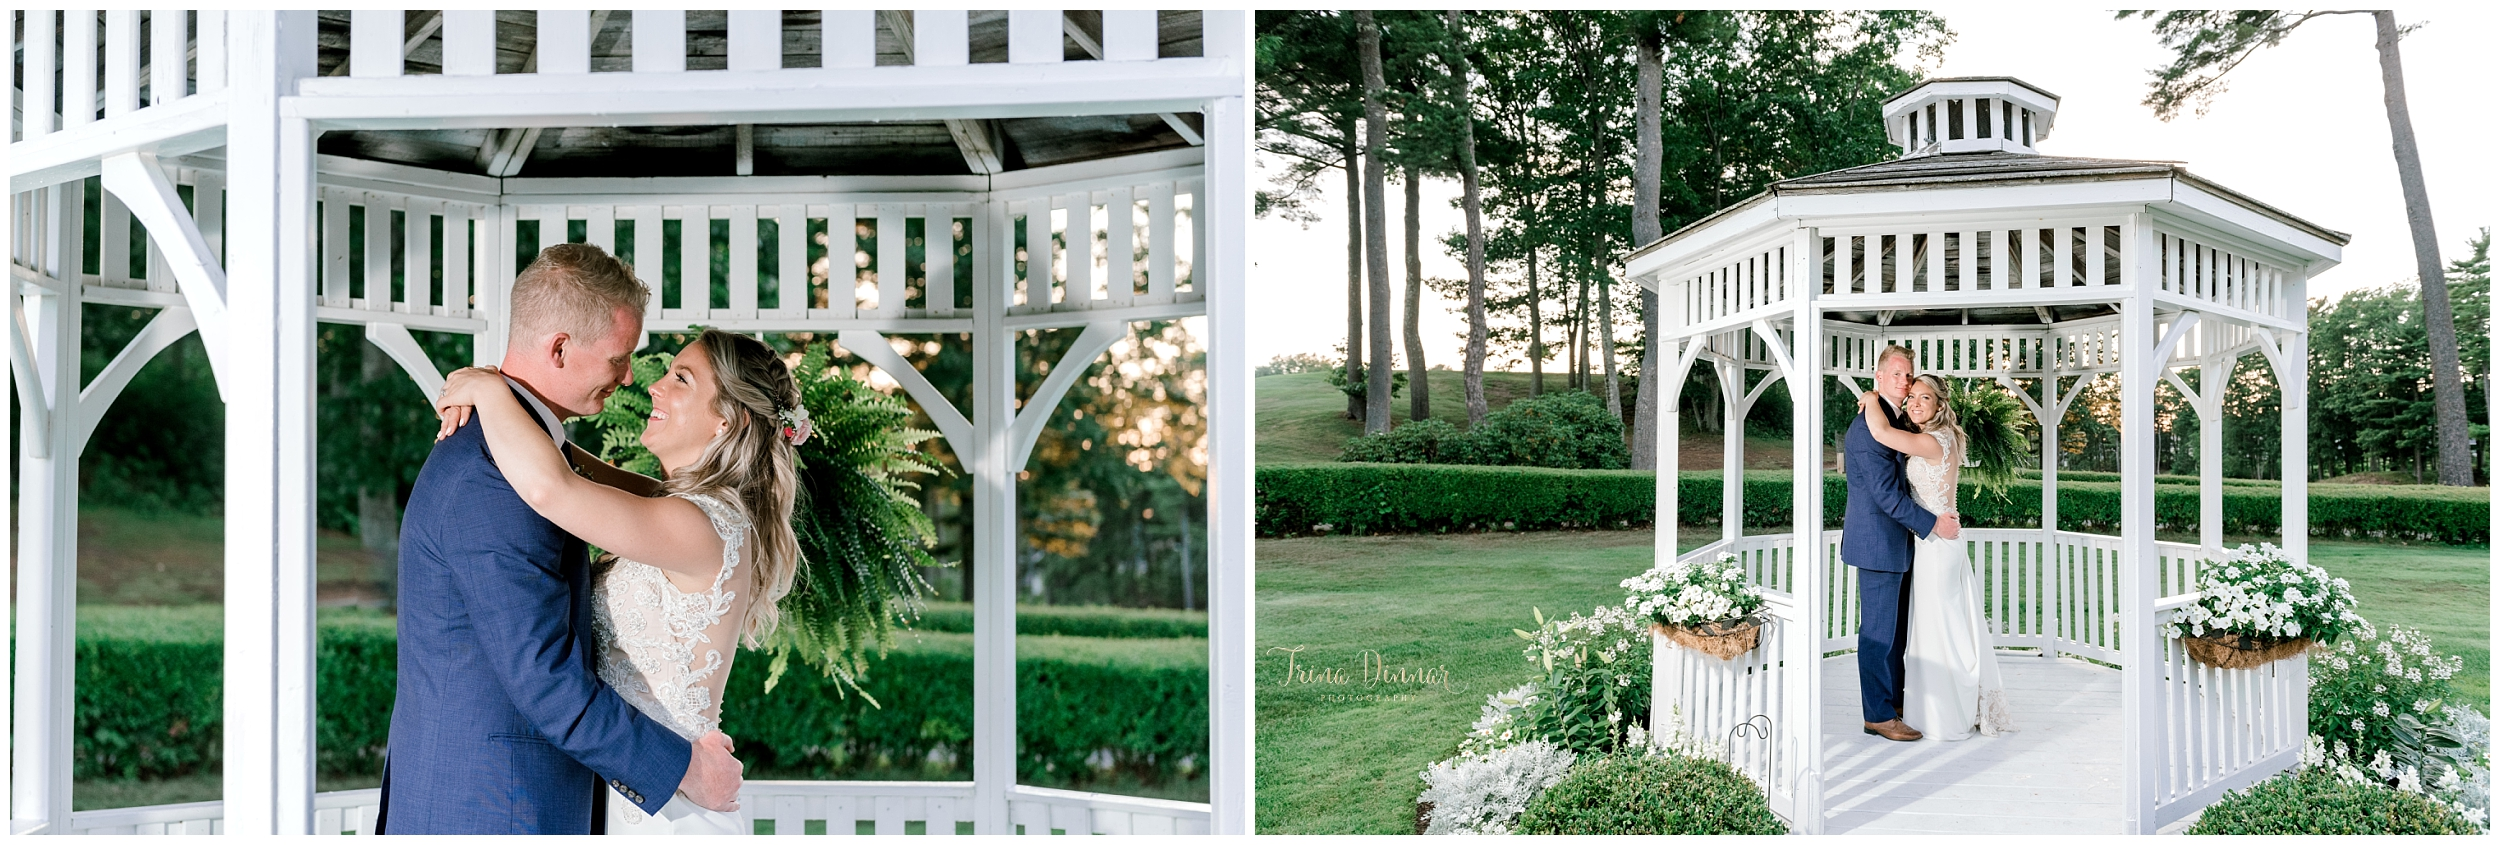 Dunegrass Gazebo Bride and Groom Portraits